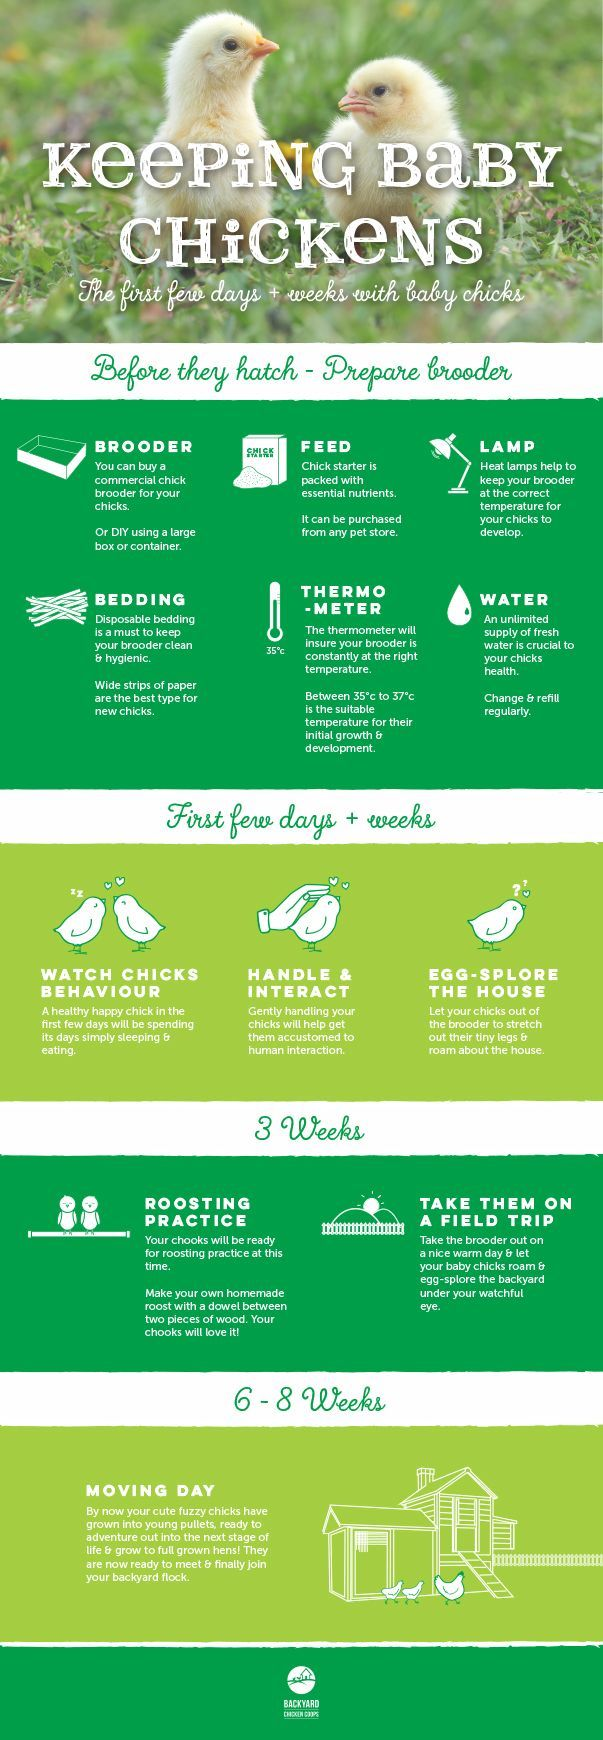 Keeping baby chickens and raising them from teeny tiny balls of fluff into charming chooks will be a rewarding experience for any chicken keeper. Here is a visual guide on what to prepare and do the first few days and weeks with your baby chickens. Read our article here for more in depth information, http://www.backyardchickencoops.com.au/first-few-days-and-weeks-with-baby-chicks/ #loveyourchickens #babychickens #infographic